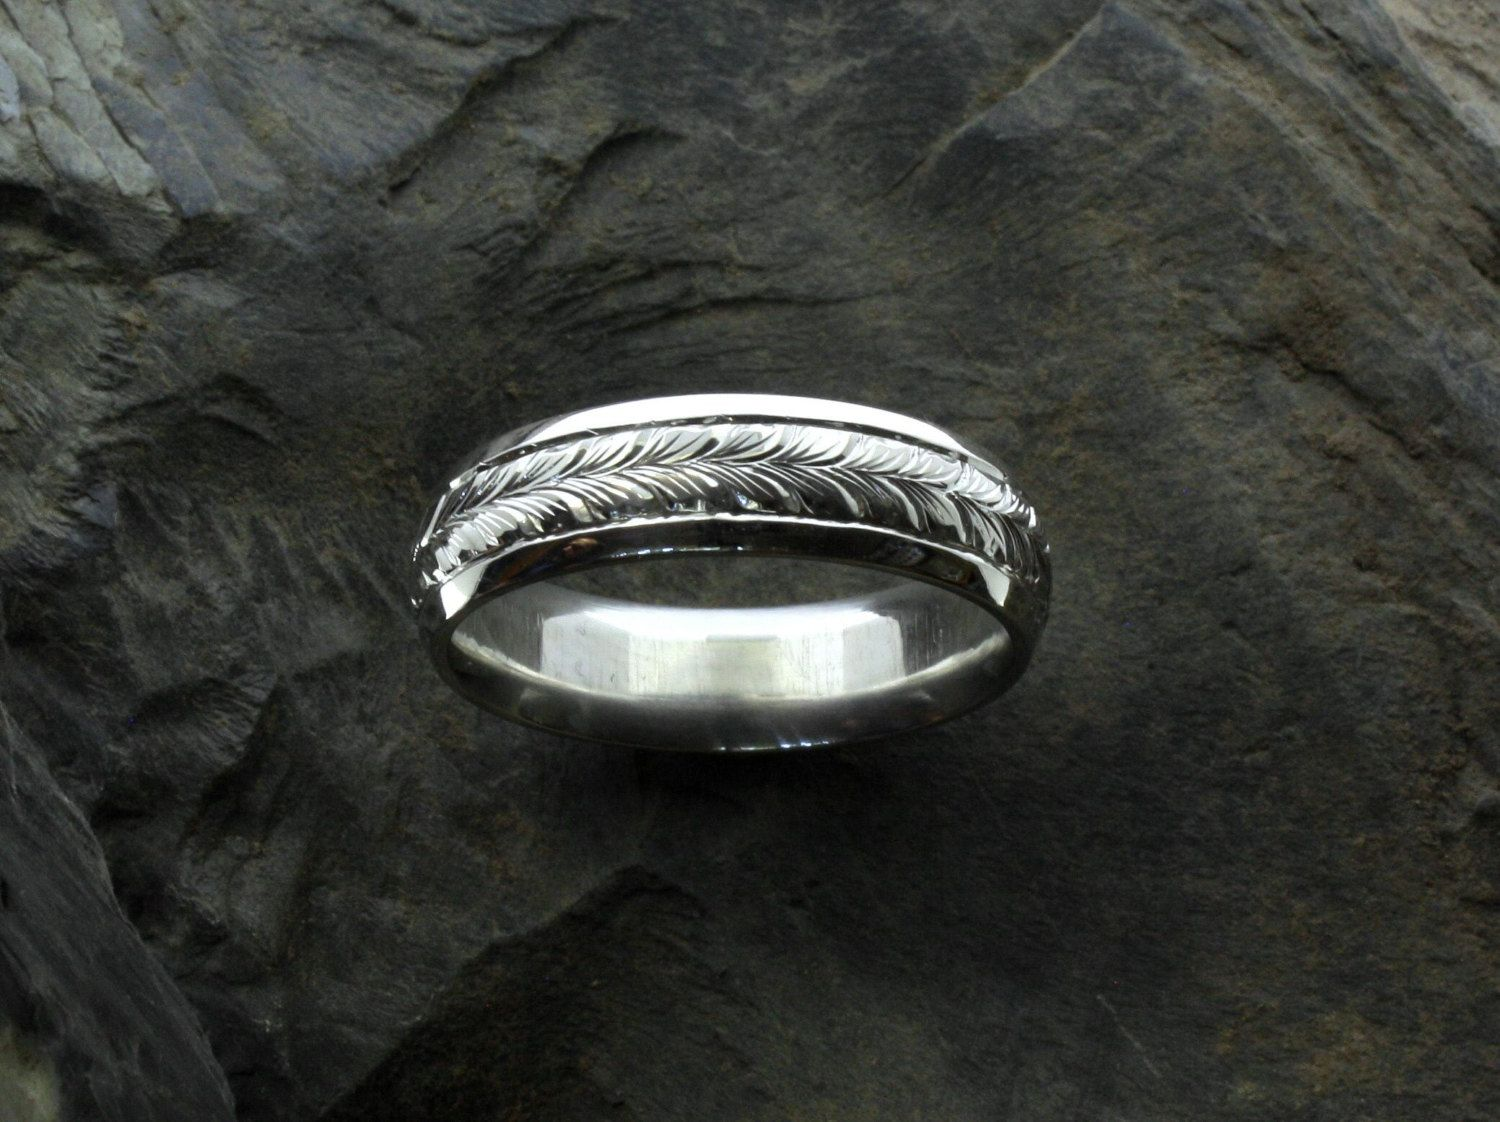 Hand Engraved Ring Band Custom Engraved Ring His Western Ring